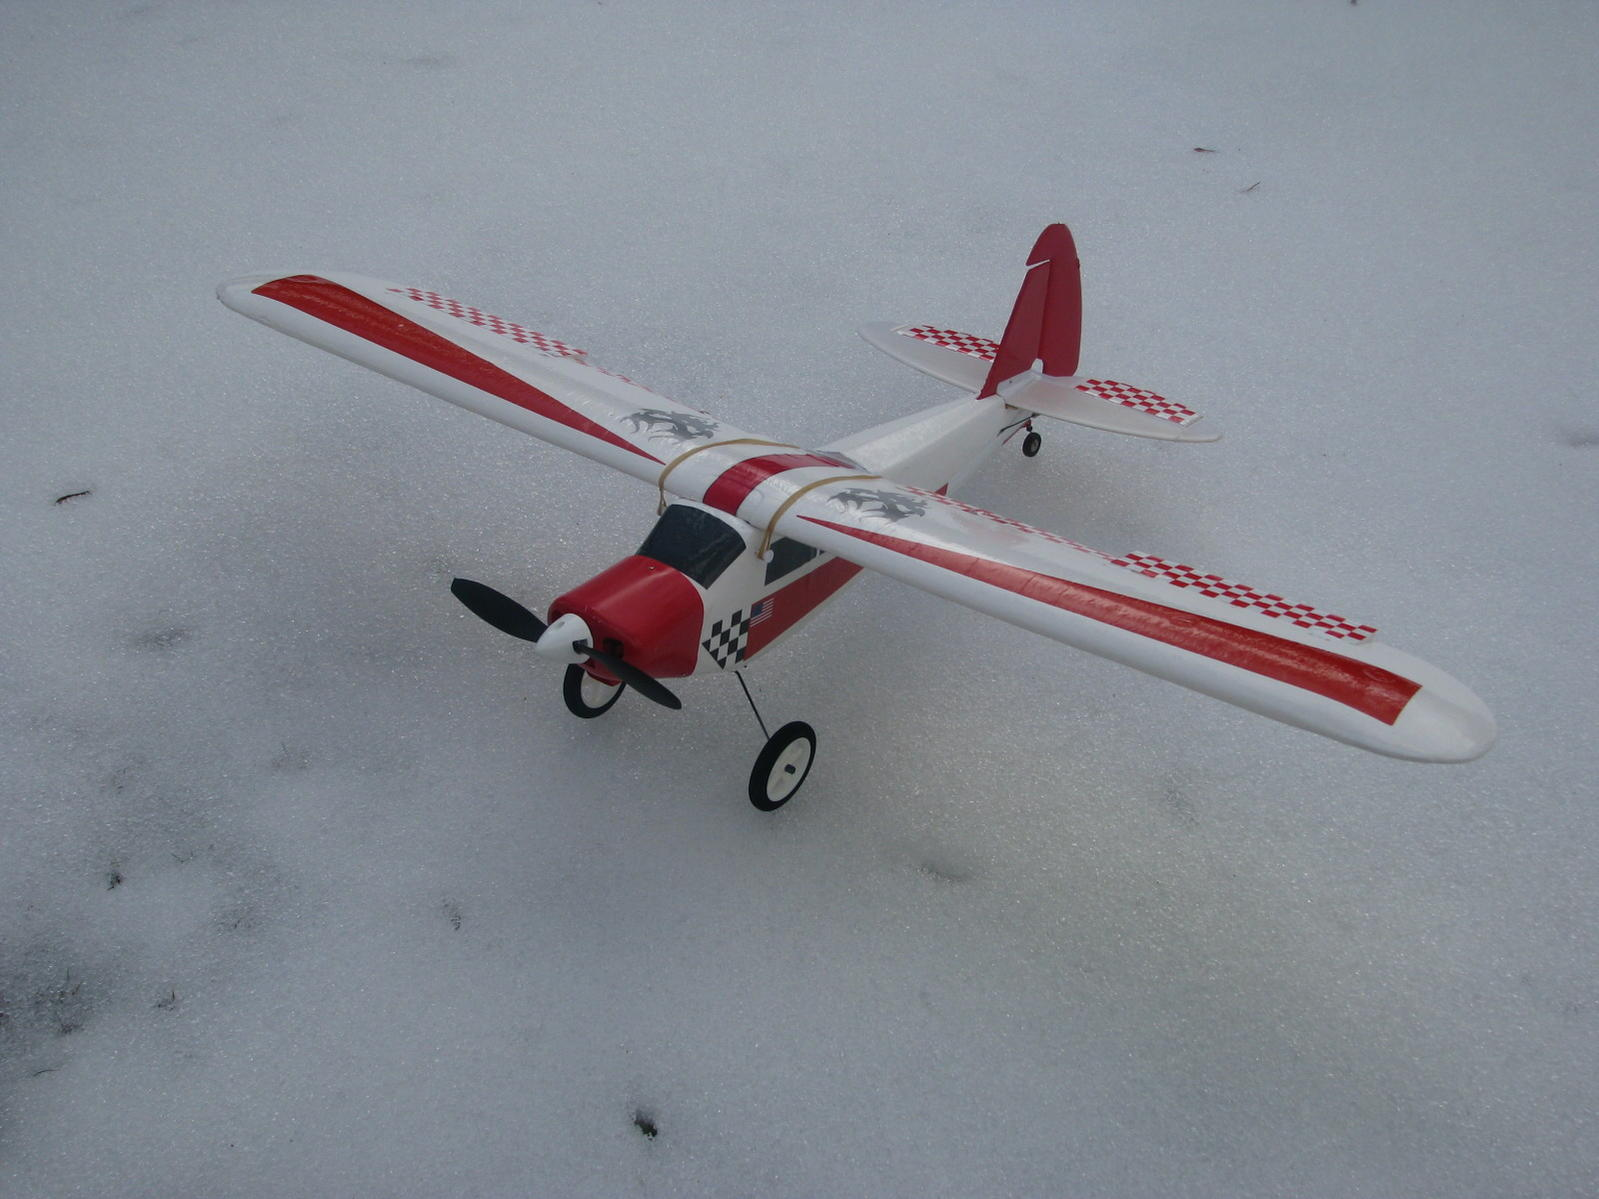 My Hobbyzone SuperCub with flaps and ailerons compliments of my great friend from Tennessee!! Thanks Decuzar...Custom trim for high visibility suitable for old eyes... Soon to be maidened - soon as the snow goes...